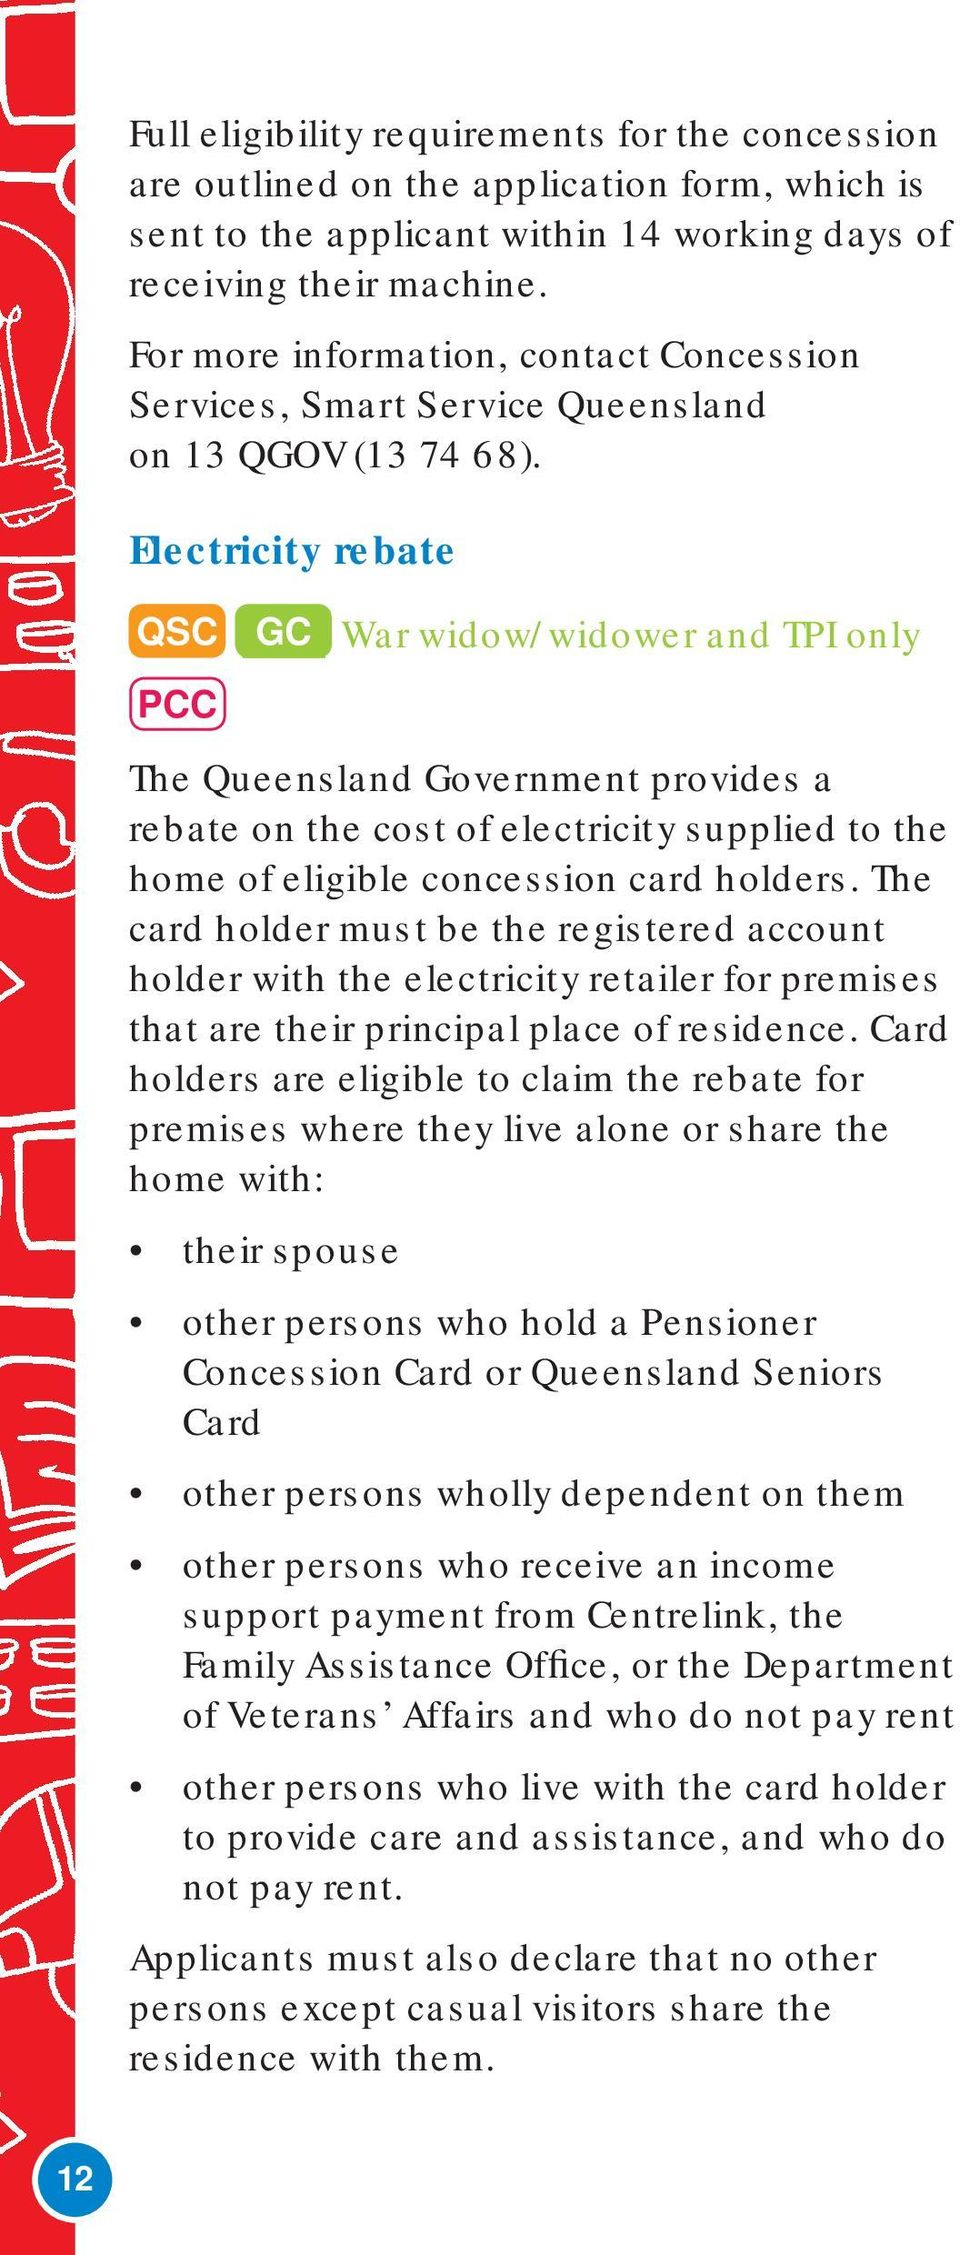 Electricity rebate QSC GC War widow/widower and TPI only PCC The Queensland Government provides a rebate on the cost of electricity supplied to the home of eligible concession card holders.